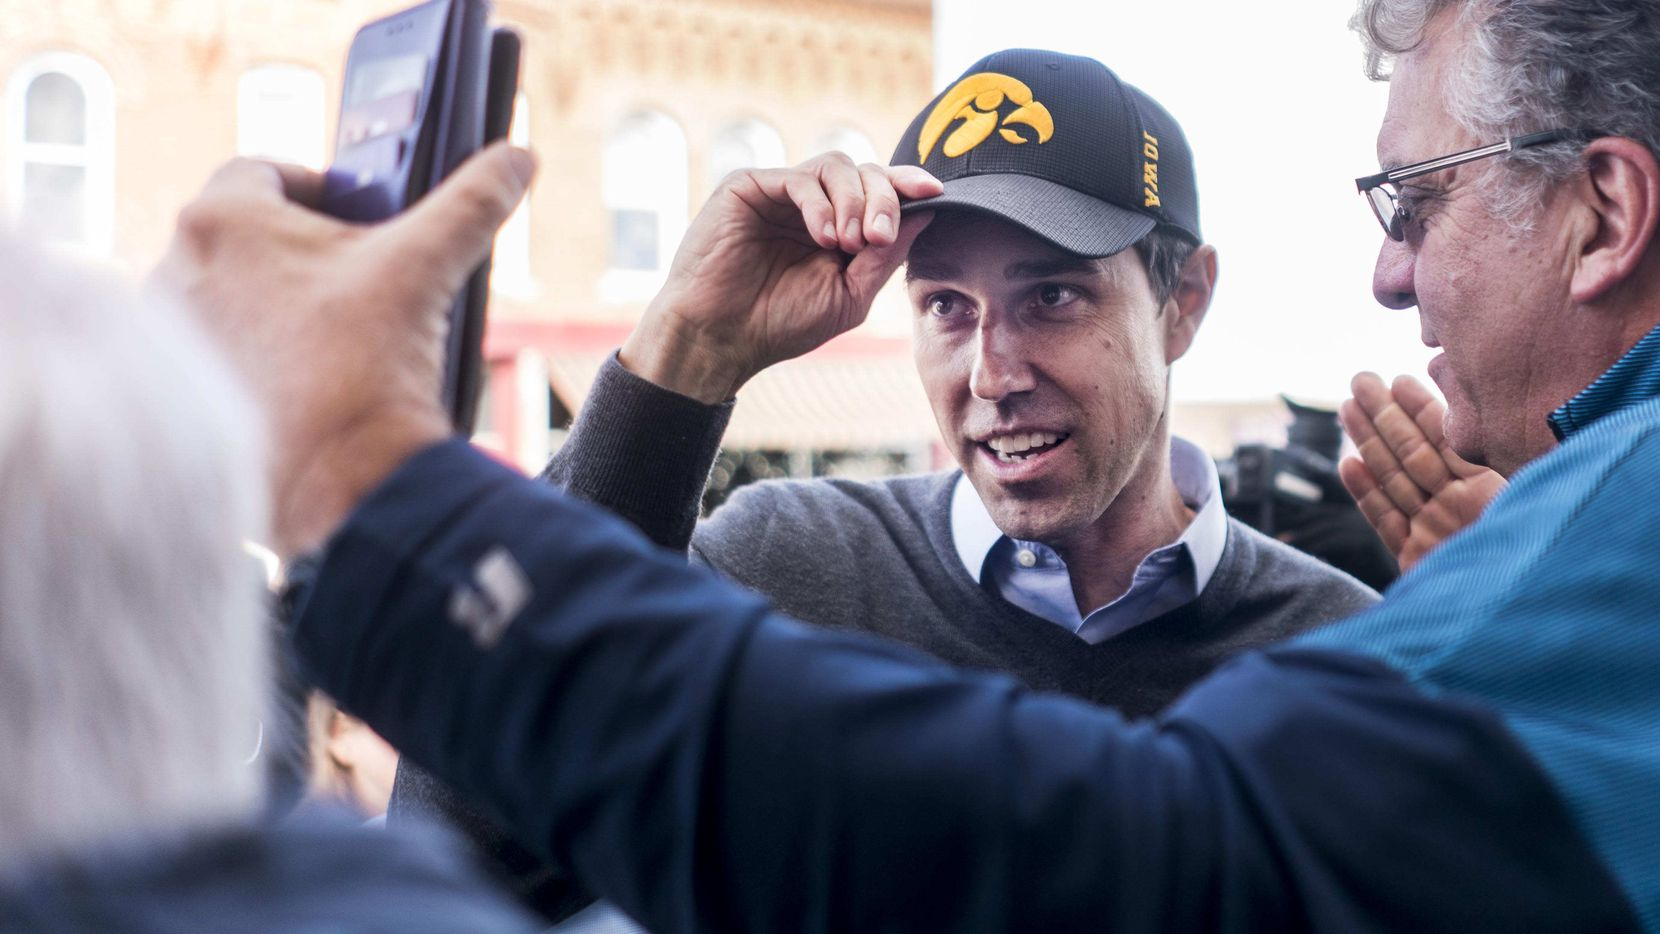 Newly announced 2020 Democratic presidential candidate Beto O'Rourke adjusts his new Iowa hat before meeting voters at the Sing-A-Long Bar and Grill in Mount Vernon, Iowa, on Friday, March 15, 2019.